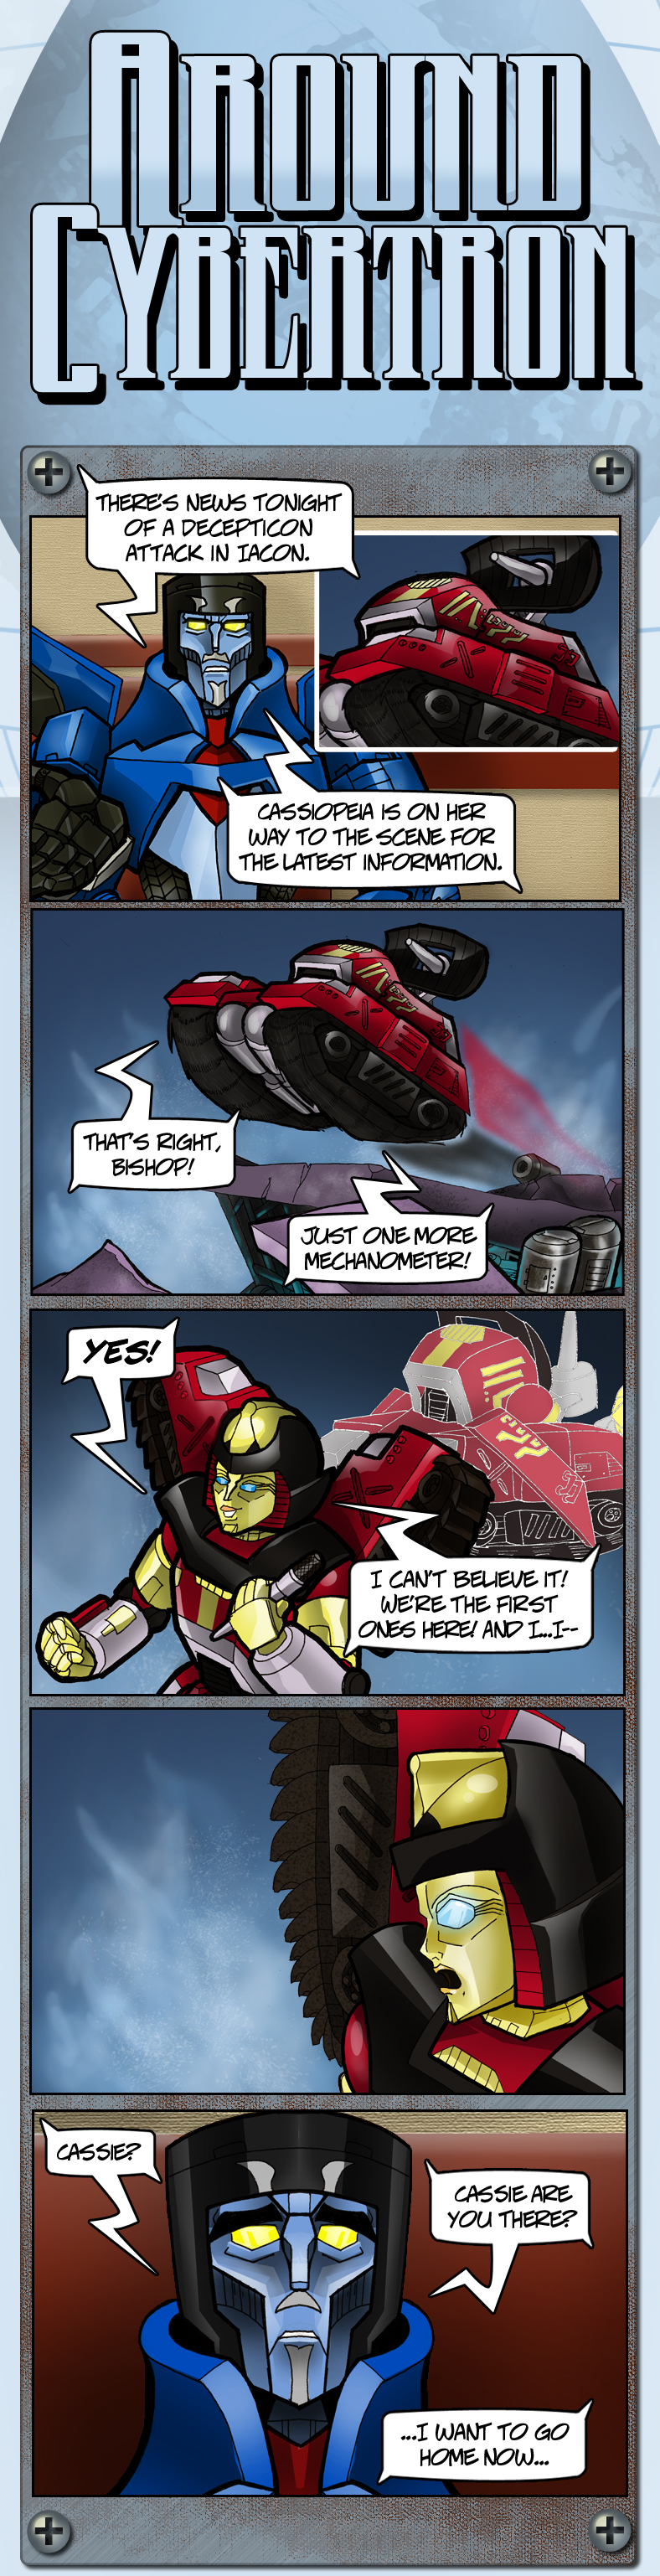 Around Cybertron Part 13 by RID-NightViper